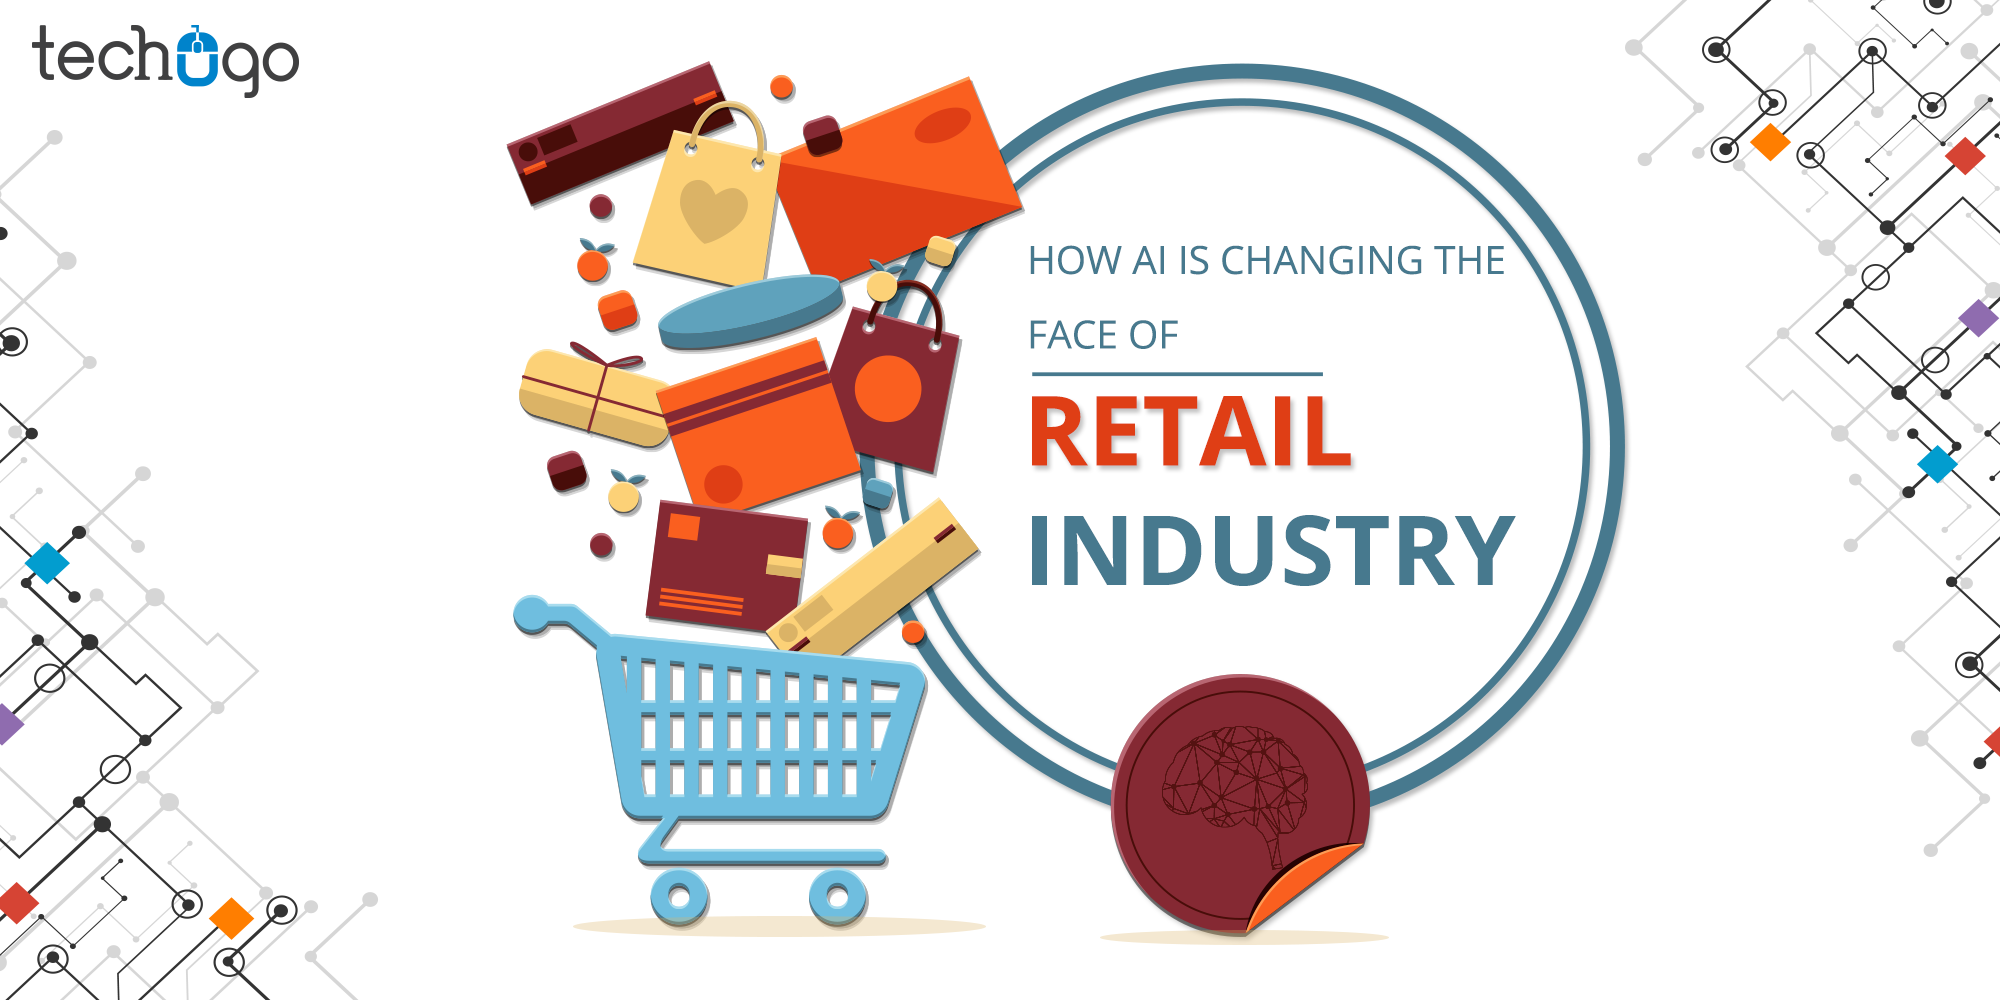 HOW AI IS CHANGING THE FACE OF RETAIL INDUSTRY